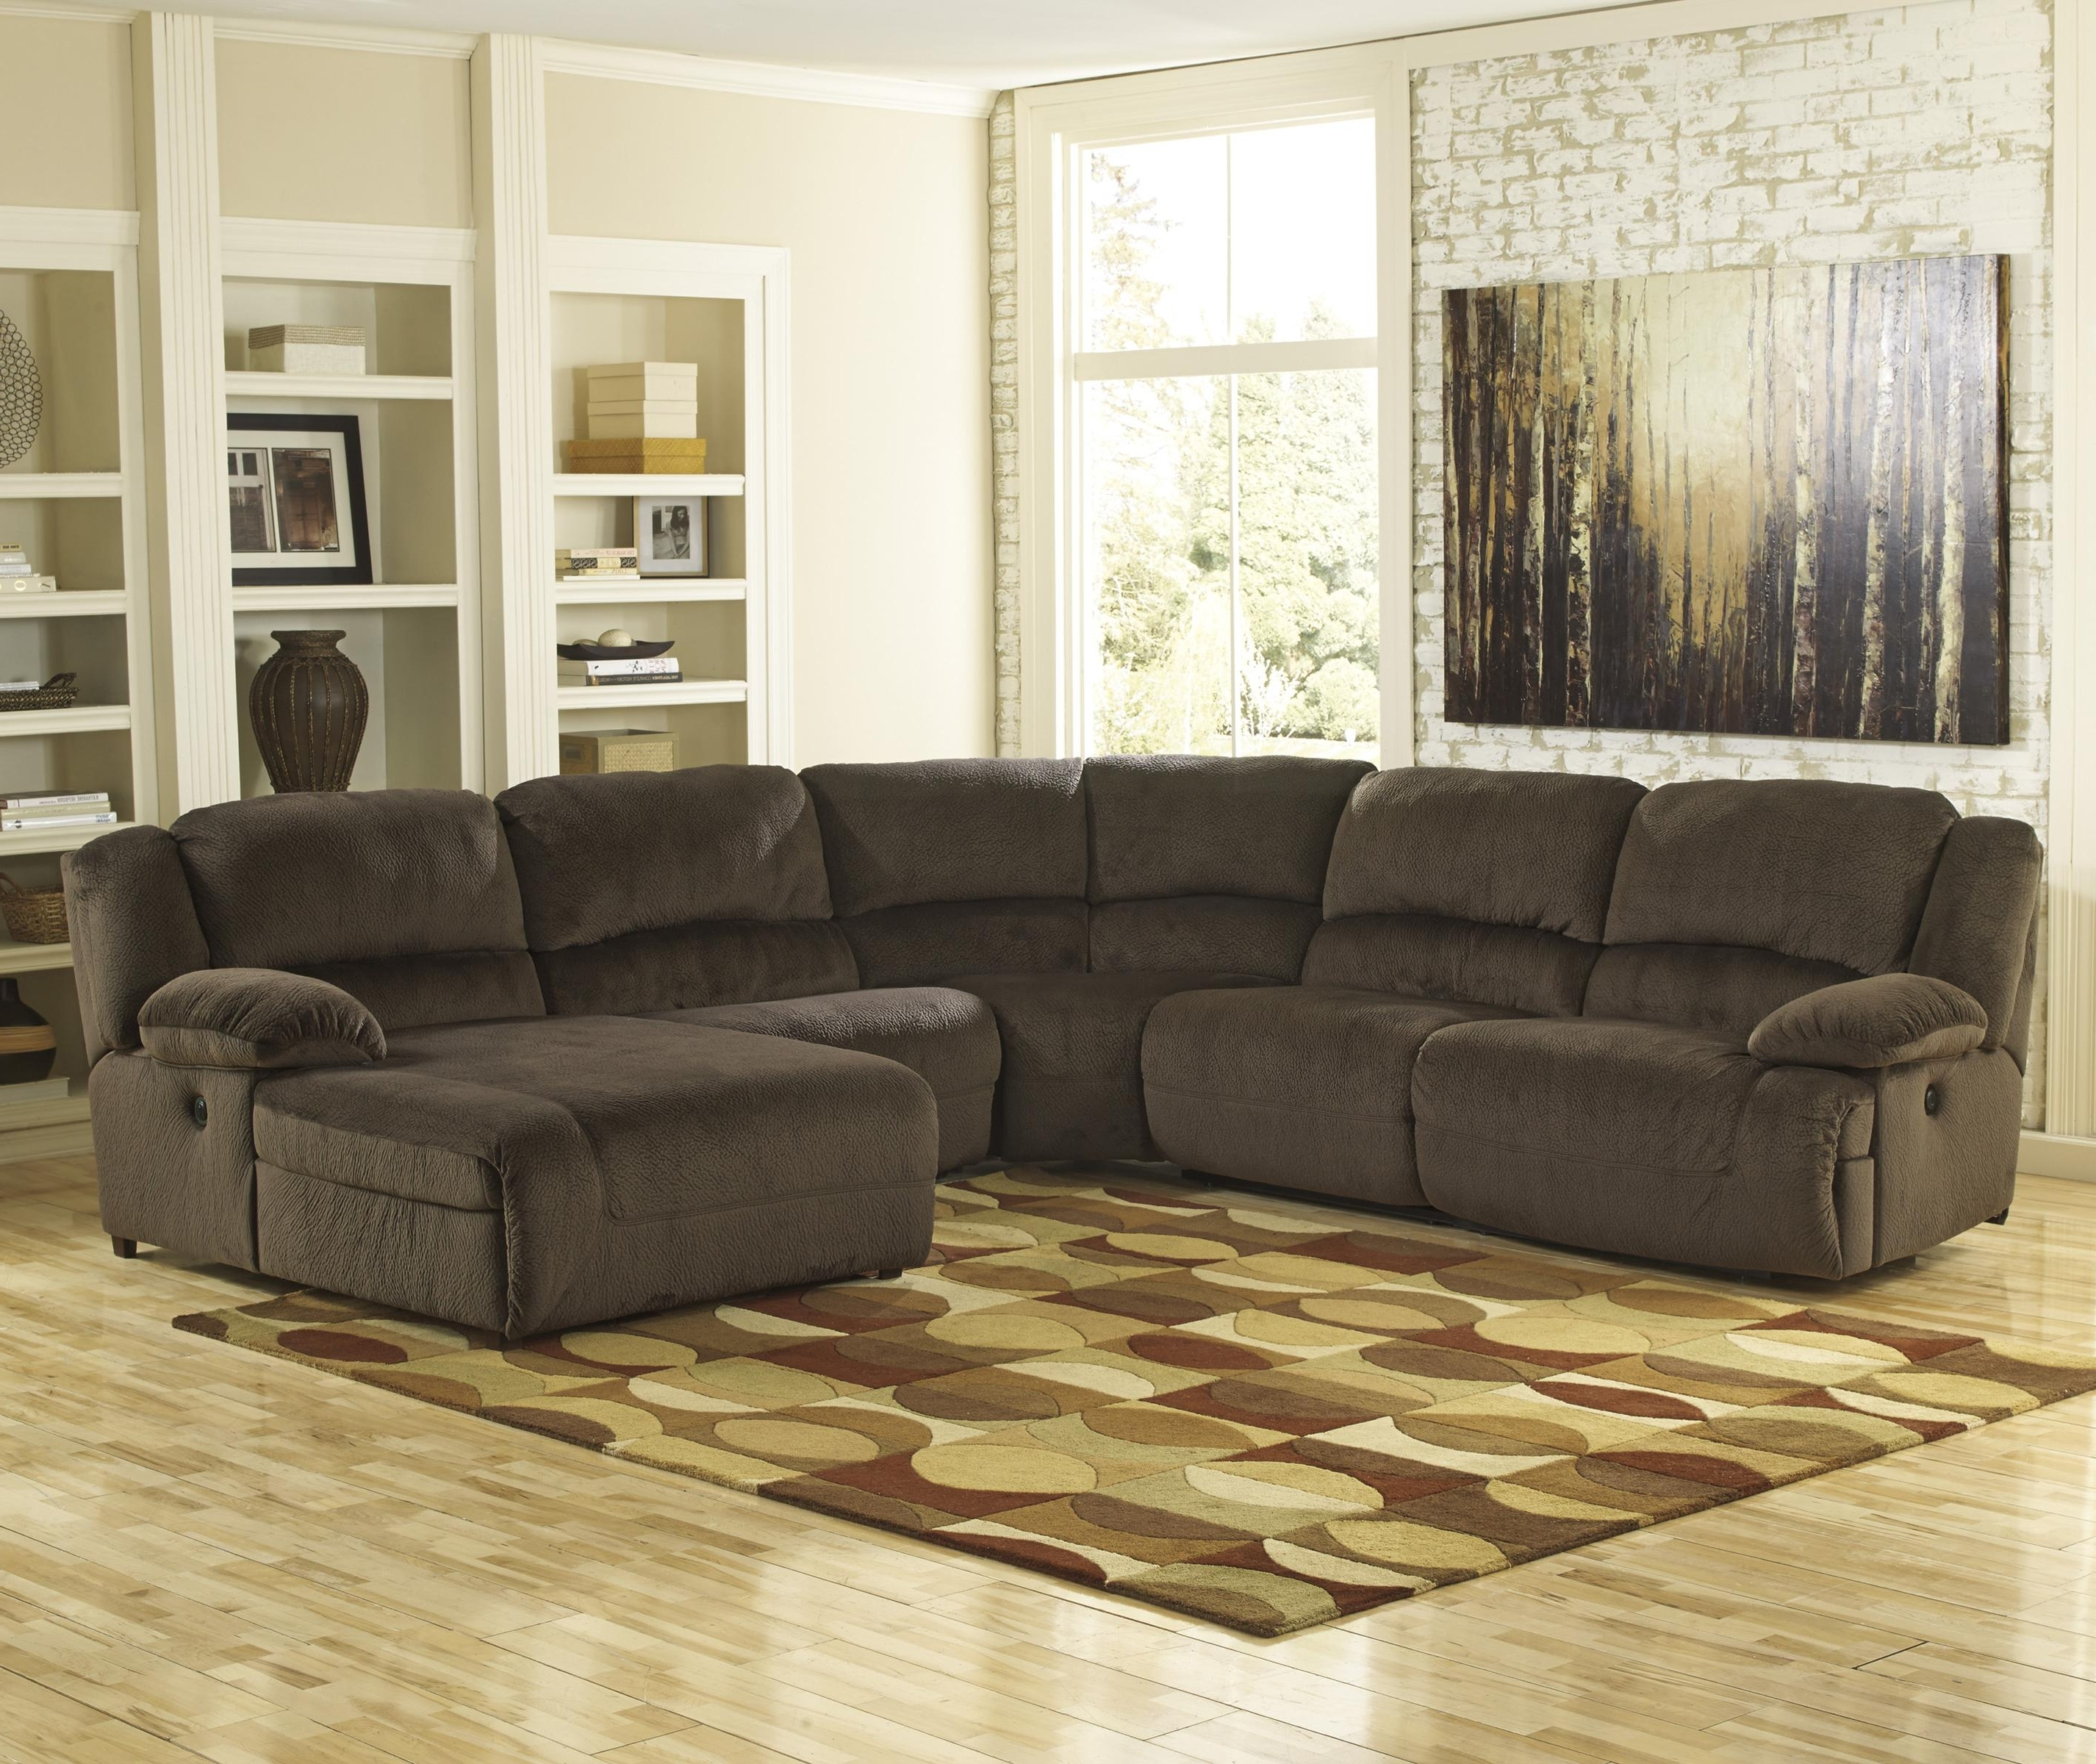 Furniture : Sectional Sofa Houzz Recliner 60s Sectional Couch 600 Throughout 2018 Houzz Sectional Sofas (View 16 of 20)